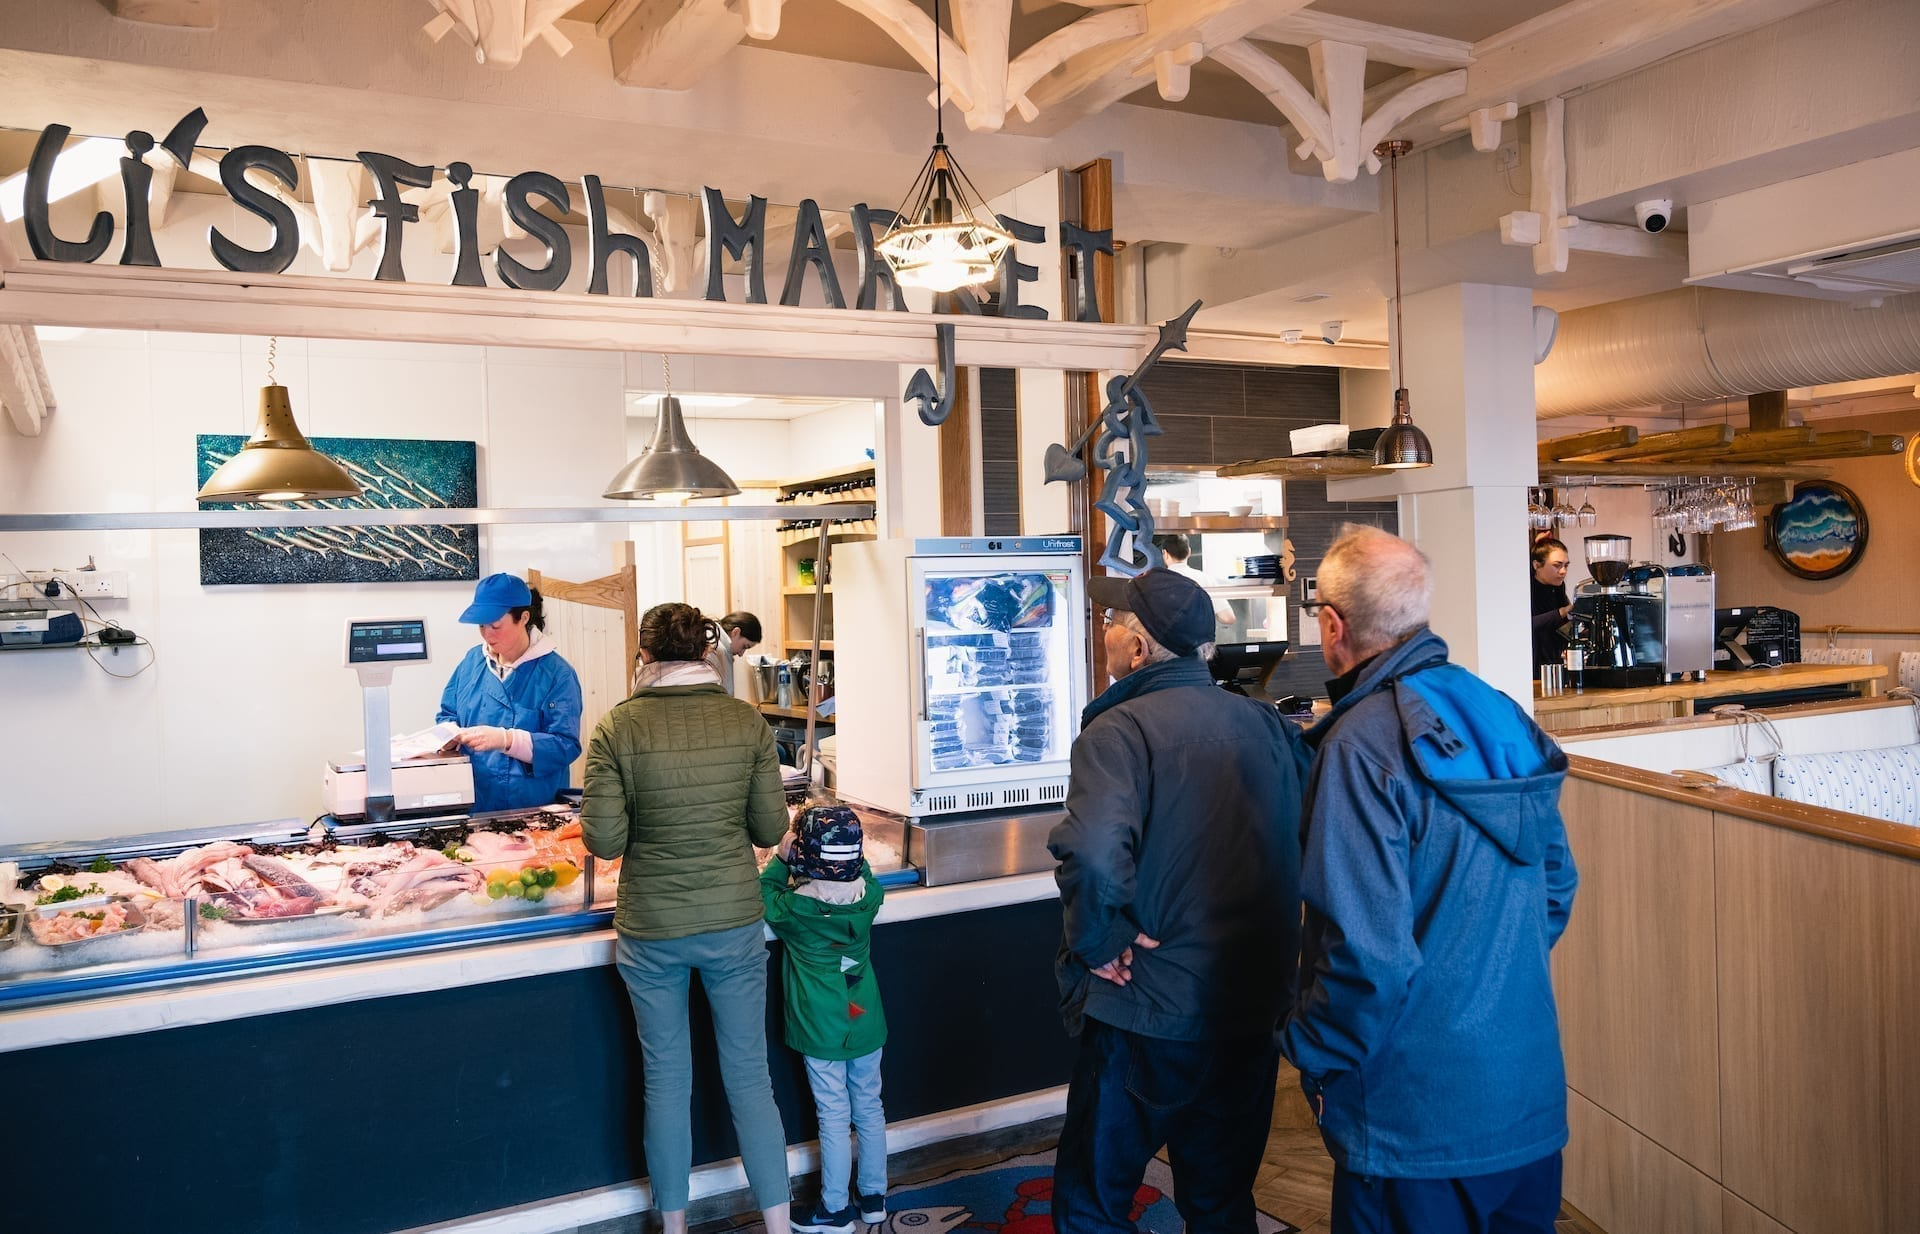 Ali's Fish Market provides fresh seafood for wholesale and retail